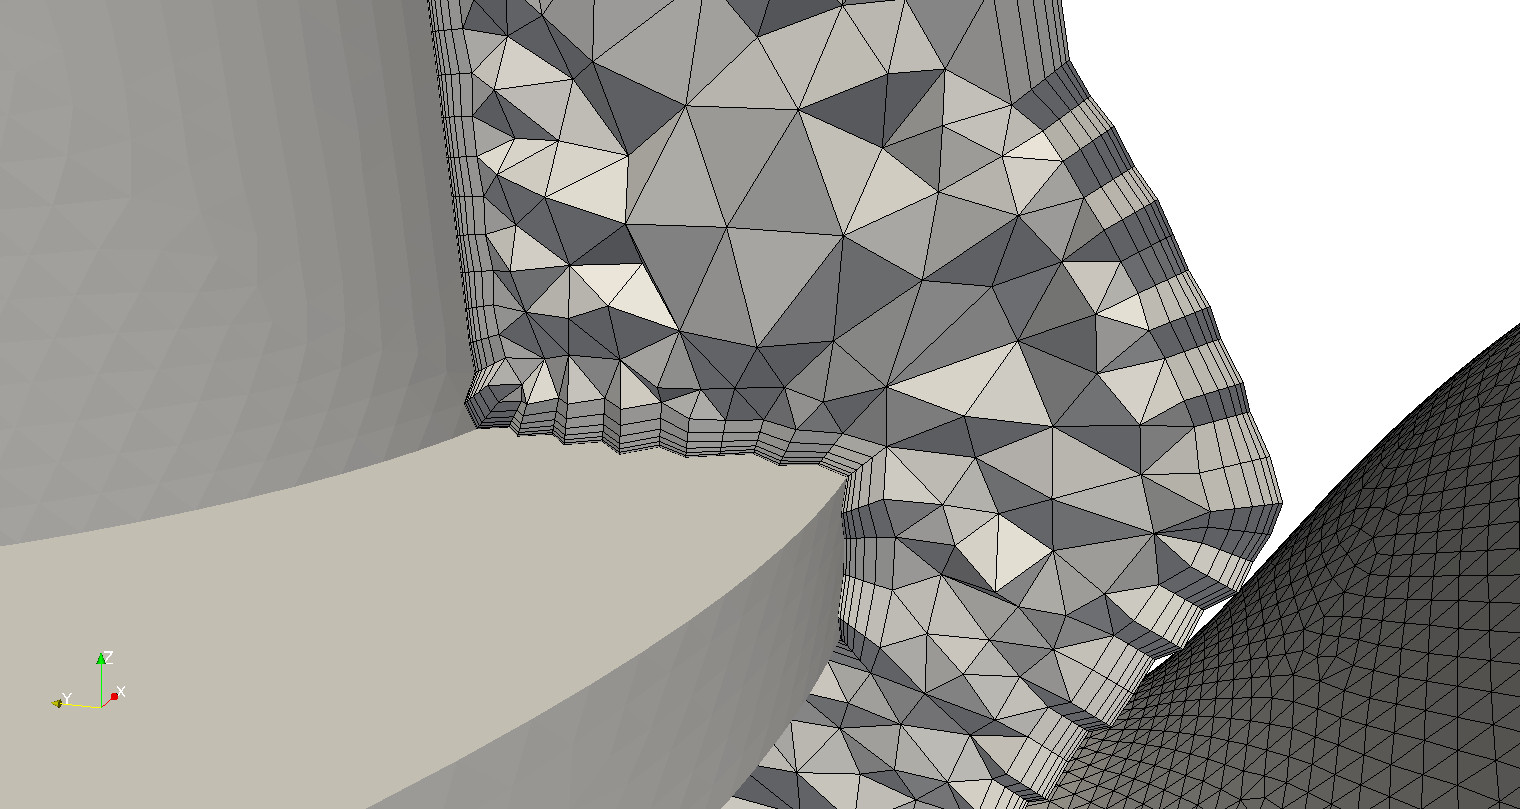 Tetrahedral mesh with boundary layer